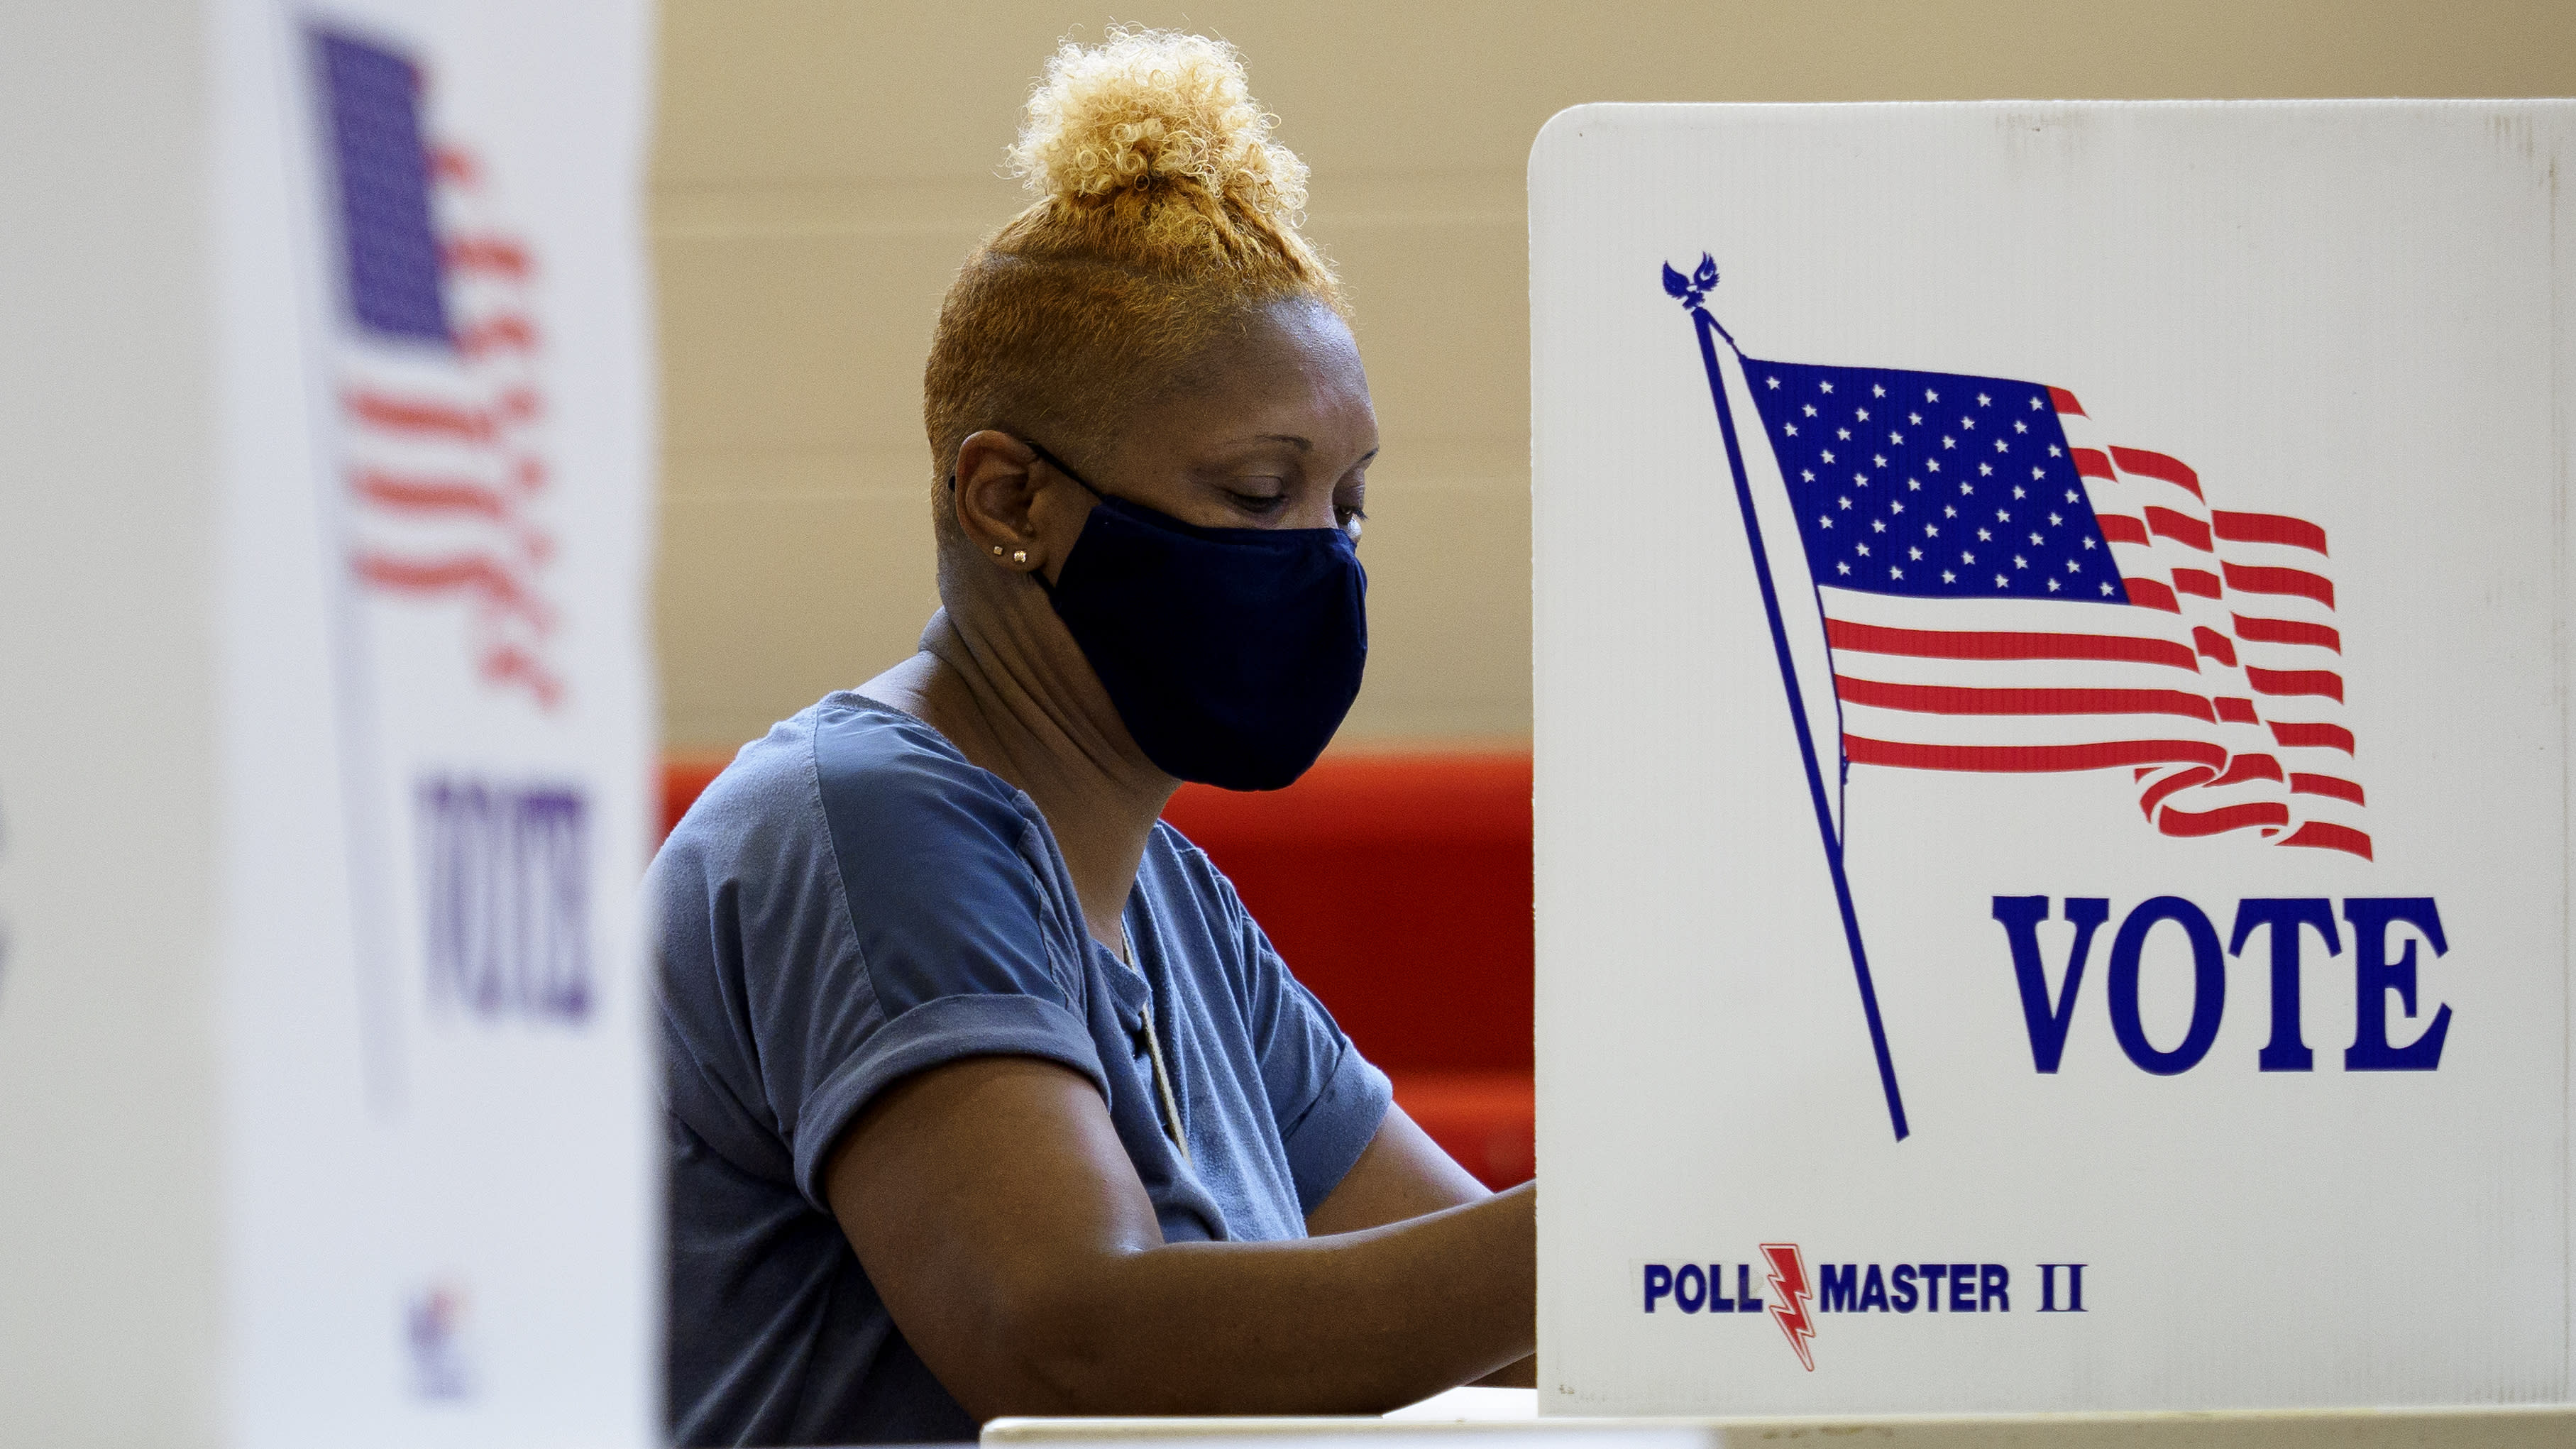 Deborah Thurman votes at the Brainerd Youth and Family Development Center on Saturday, Aug. 1, 2020 in Chattanooga, Tenn. Saturday marked the end of the early voting period. (C.B. Schmelter/Chattanooga Times Free Press via AP)